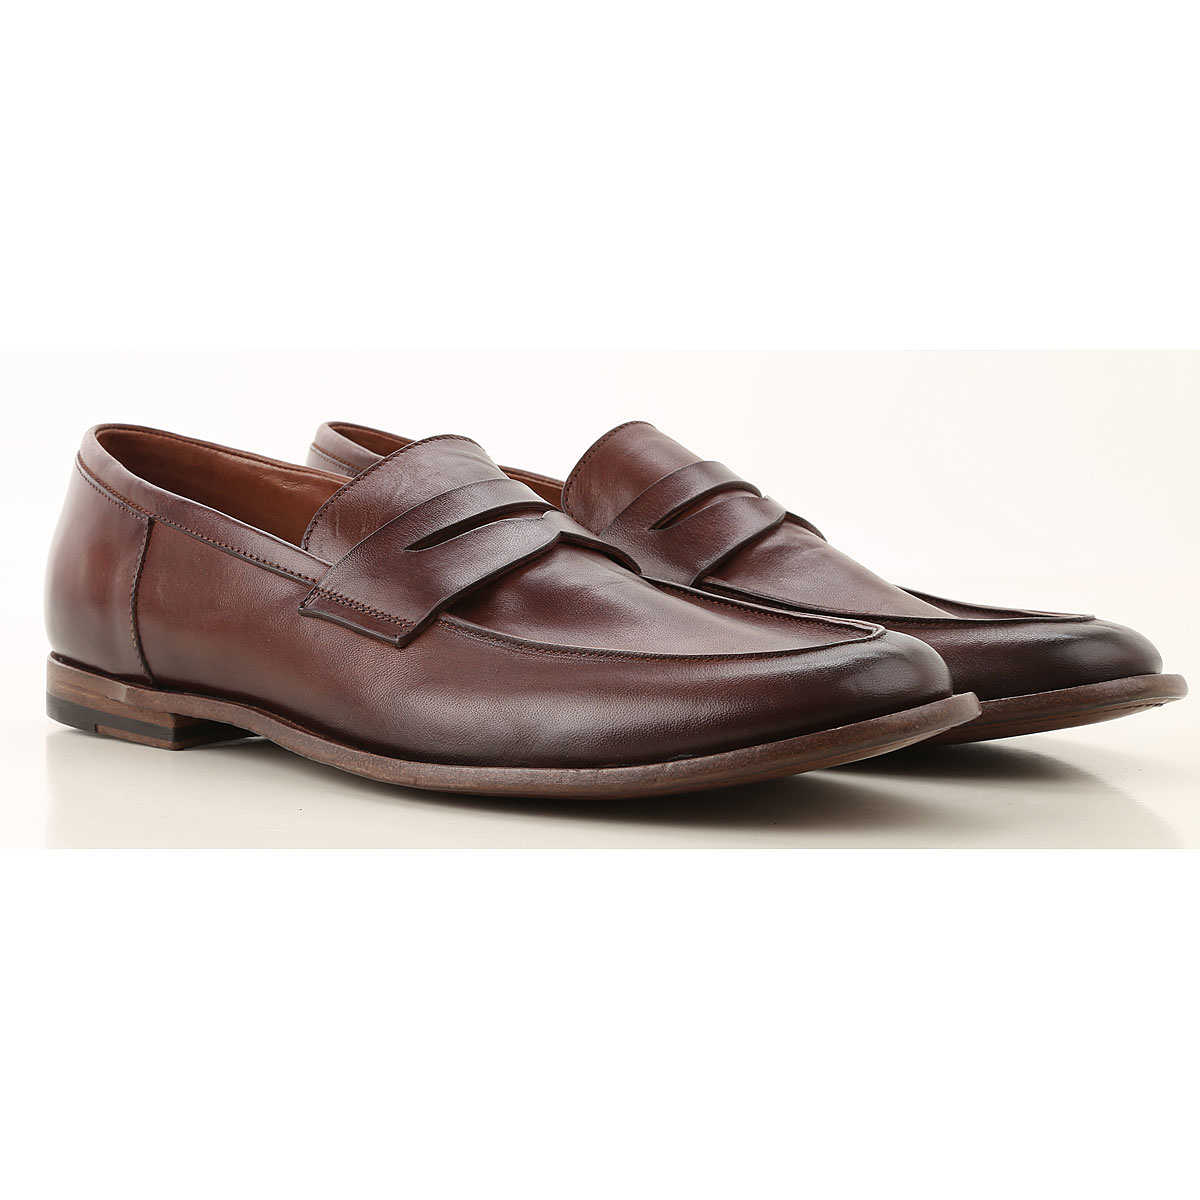 Pantanetti Loafers for Men On Sale Chocolate Brown DK - GOOFASH - Mens TROUSERS